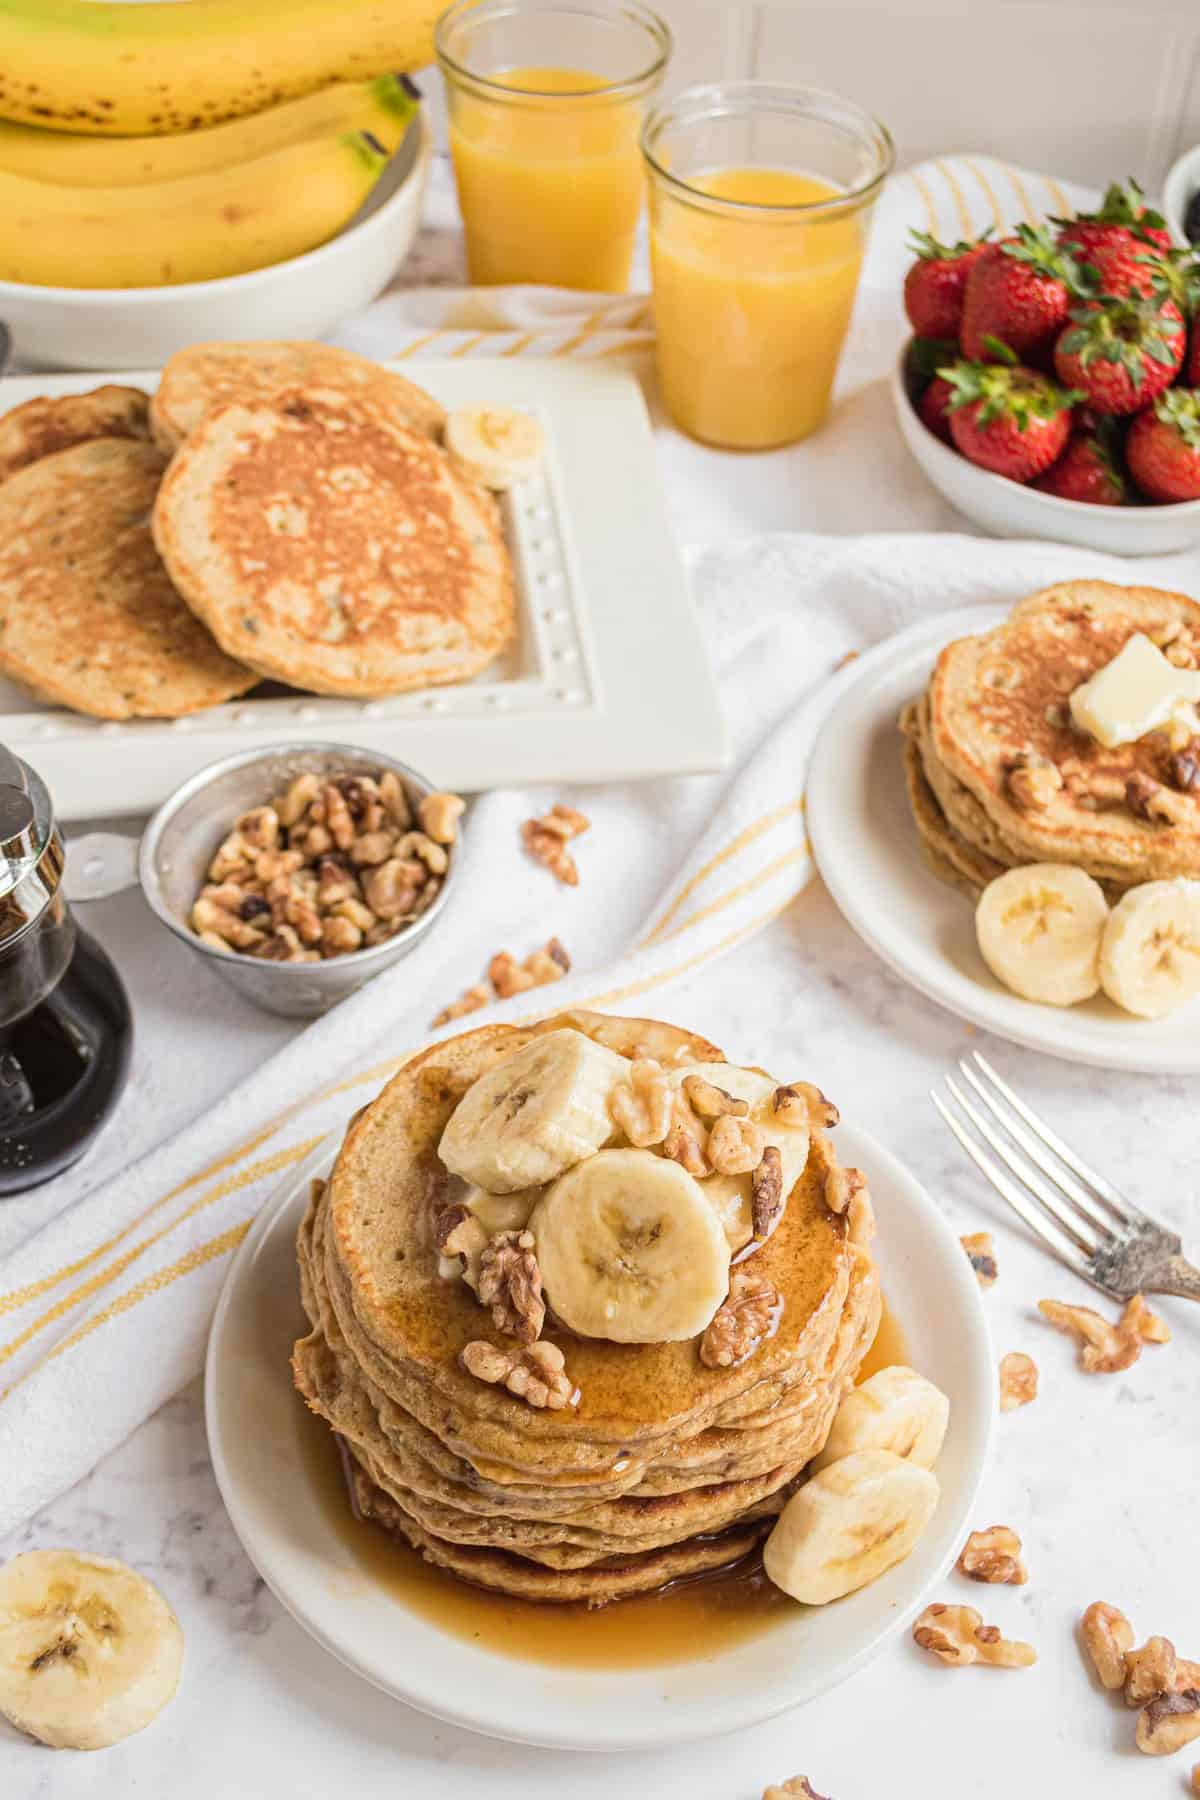 Multiple plates of banana bread pancakes topped with walnuts and sliced bananas.